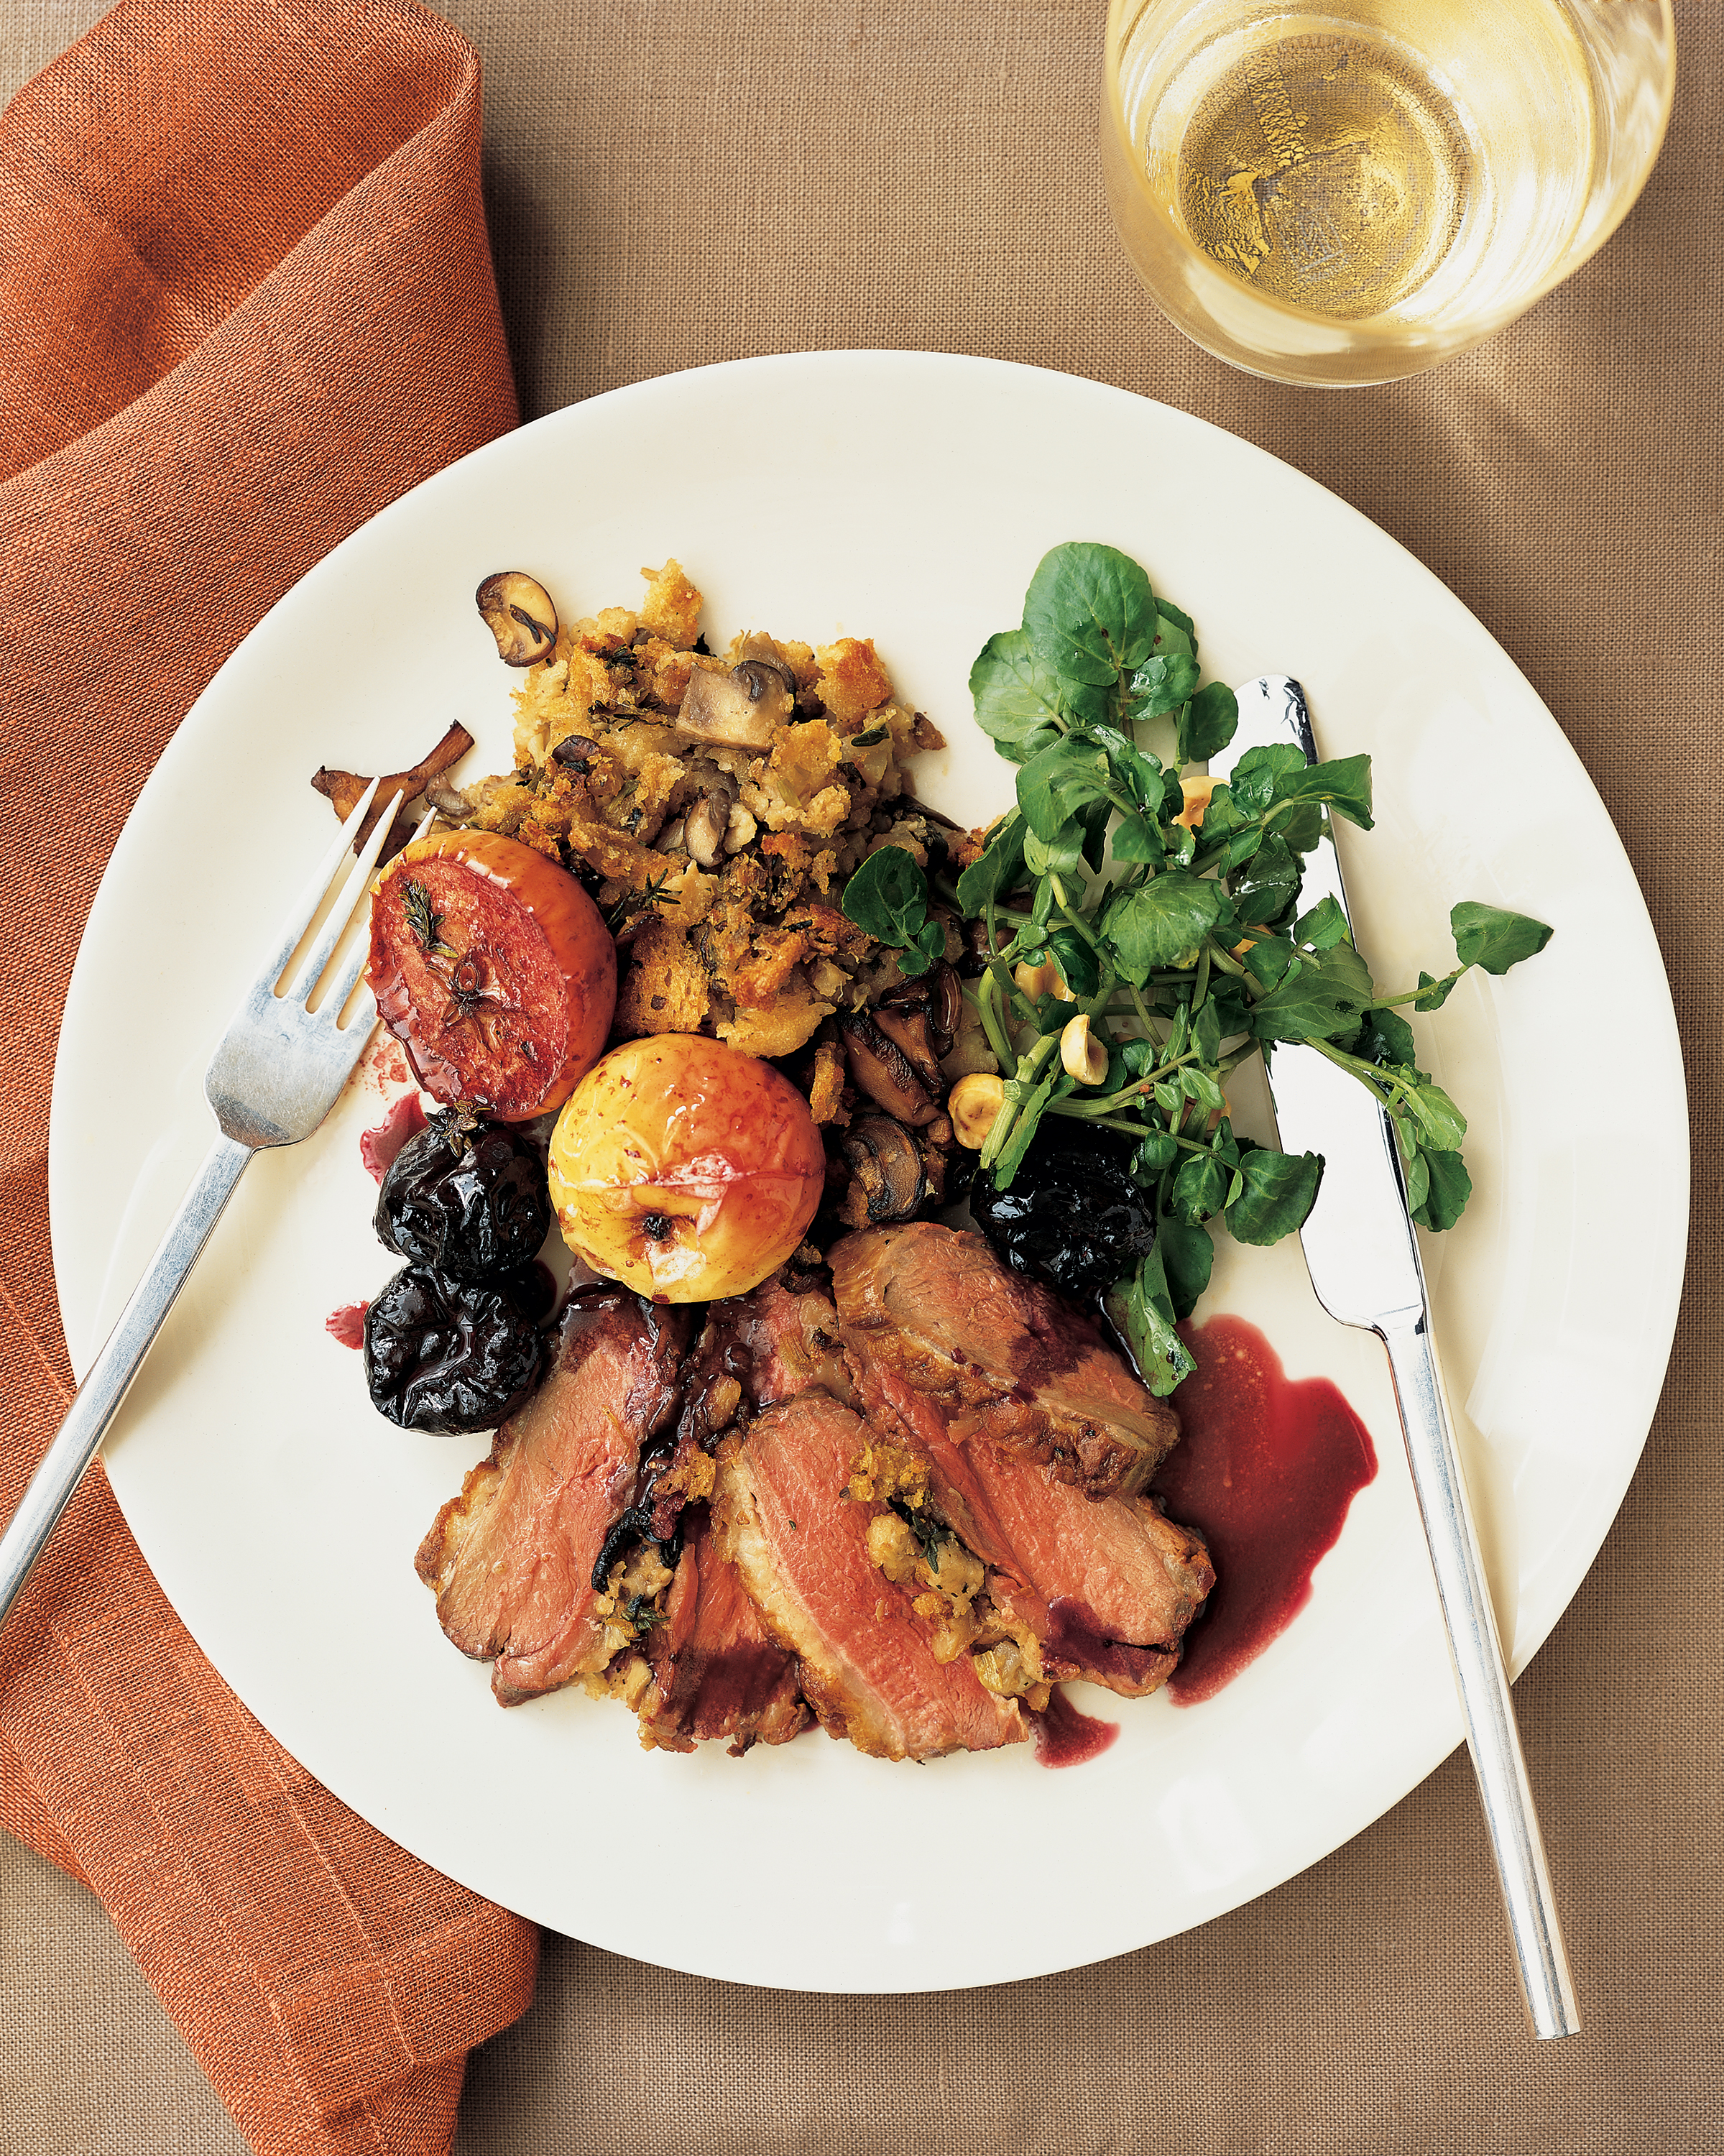 Roasted Duck Breasts with Wild Mushroom Stuffing and Red Wine Sauce